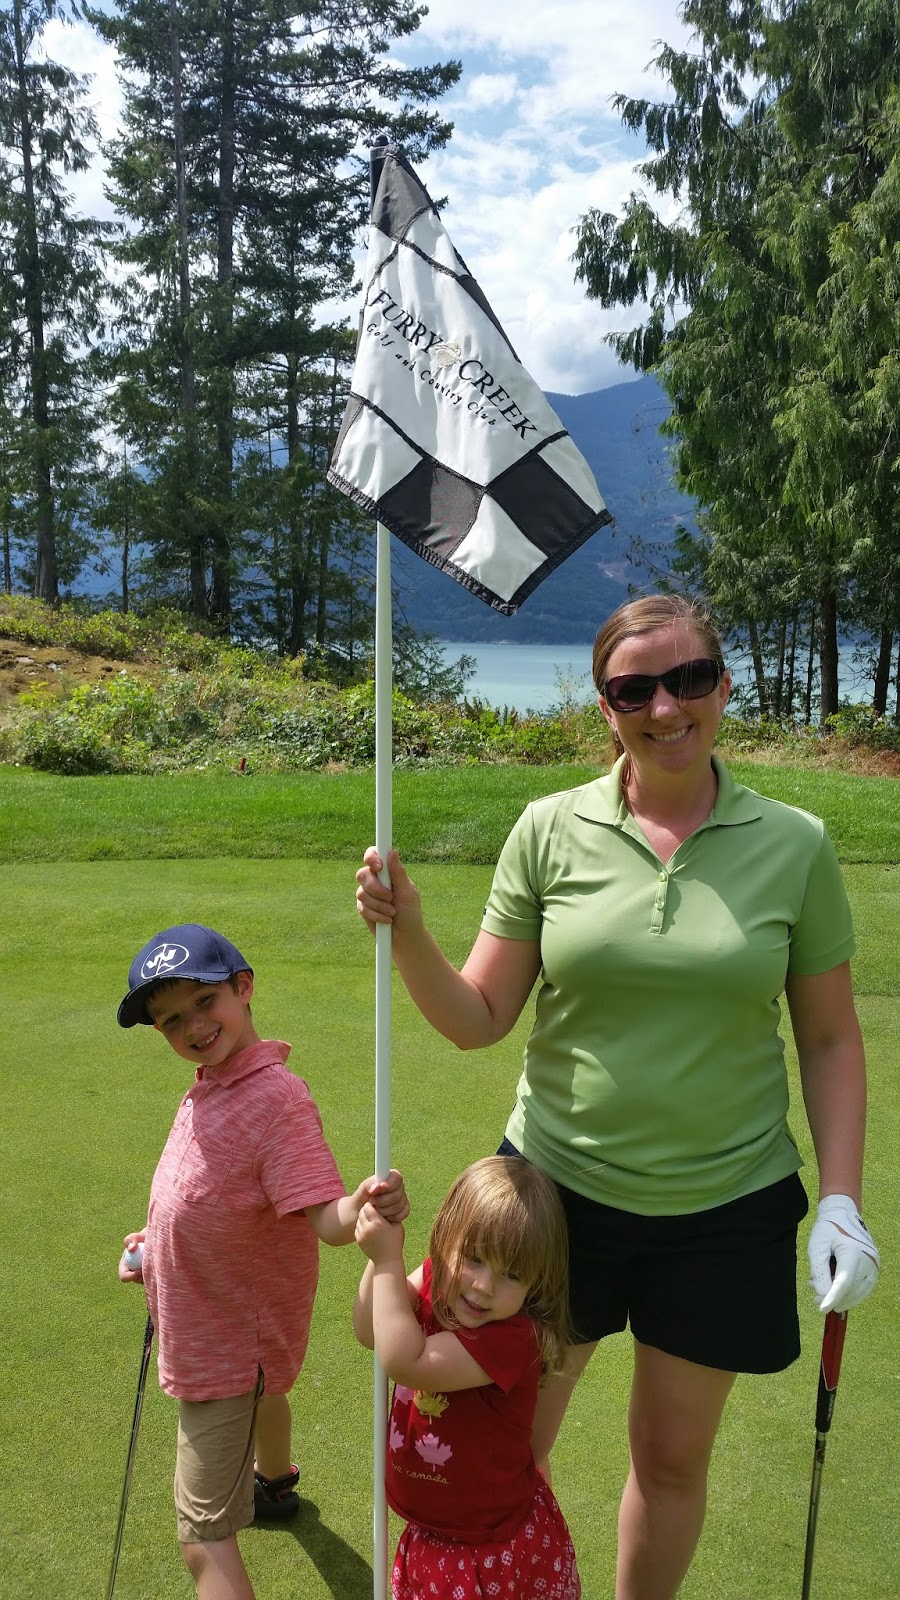 Saskmom's Tips for Golfing with Kids